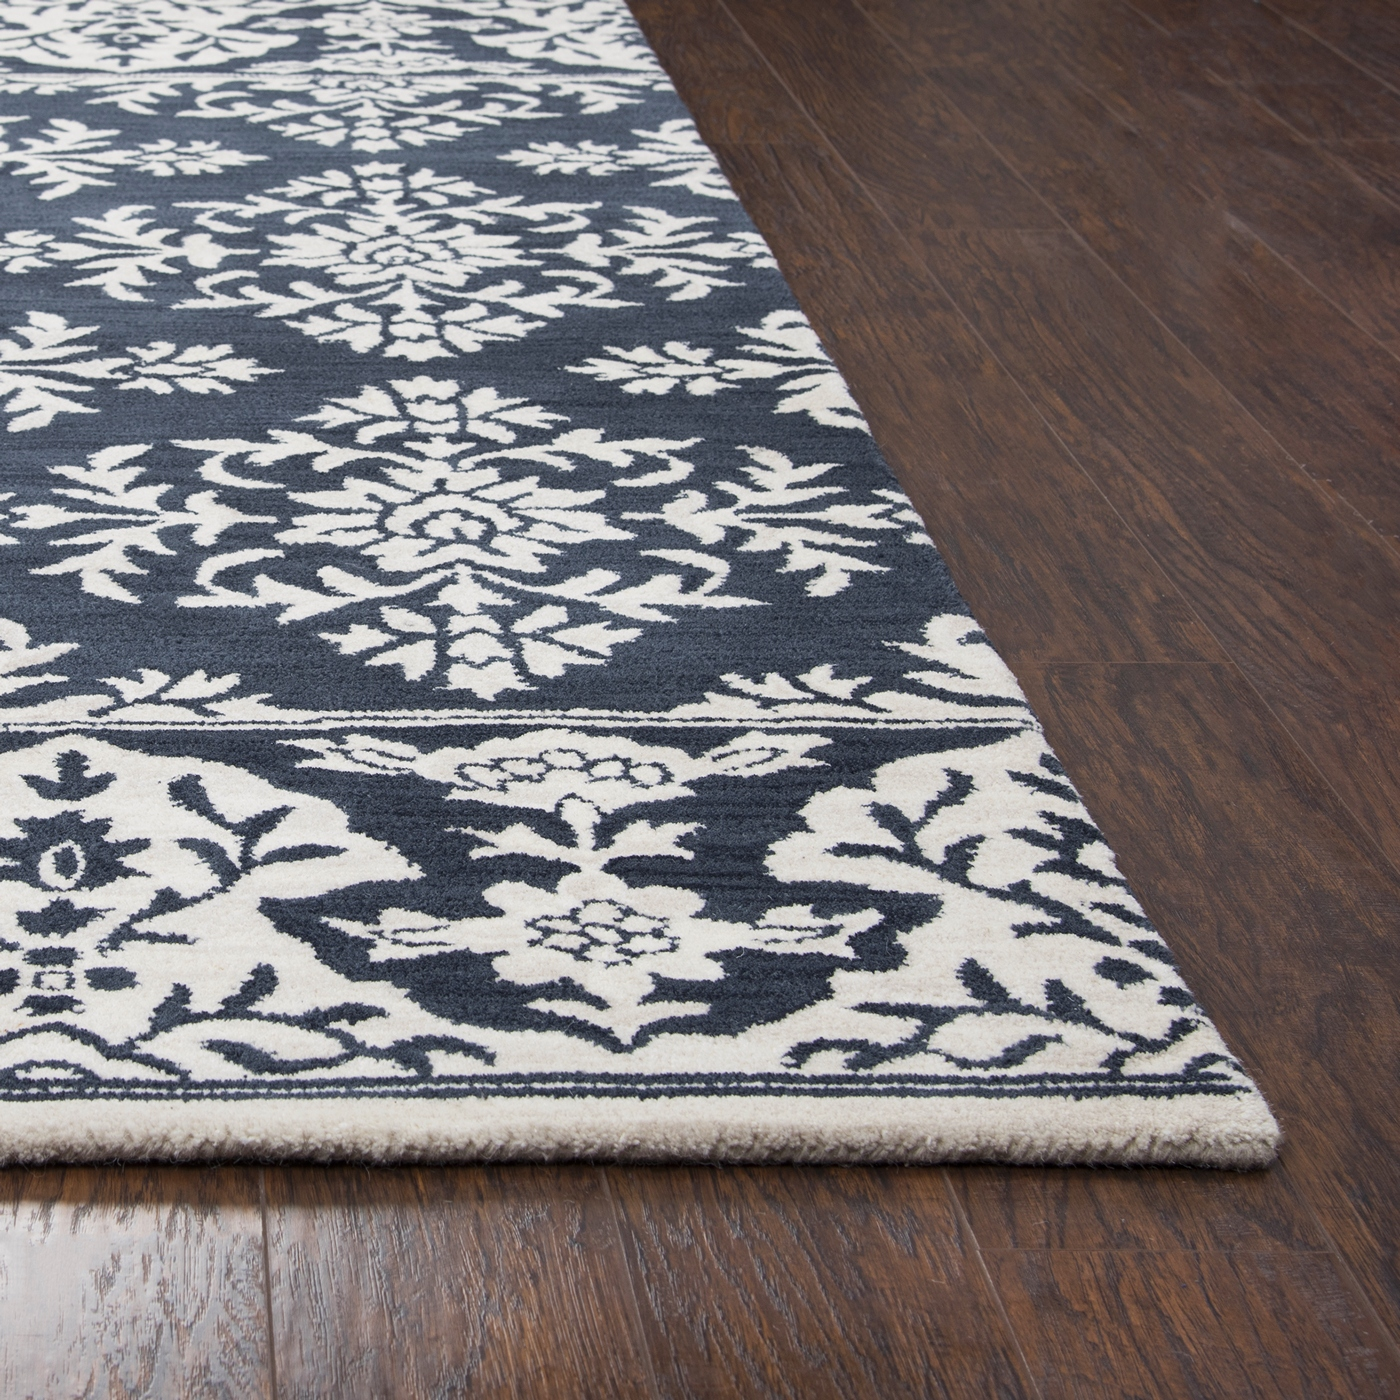 Marianna Fields Damask Border Wool Area Rug In Navy